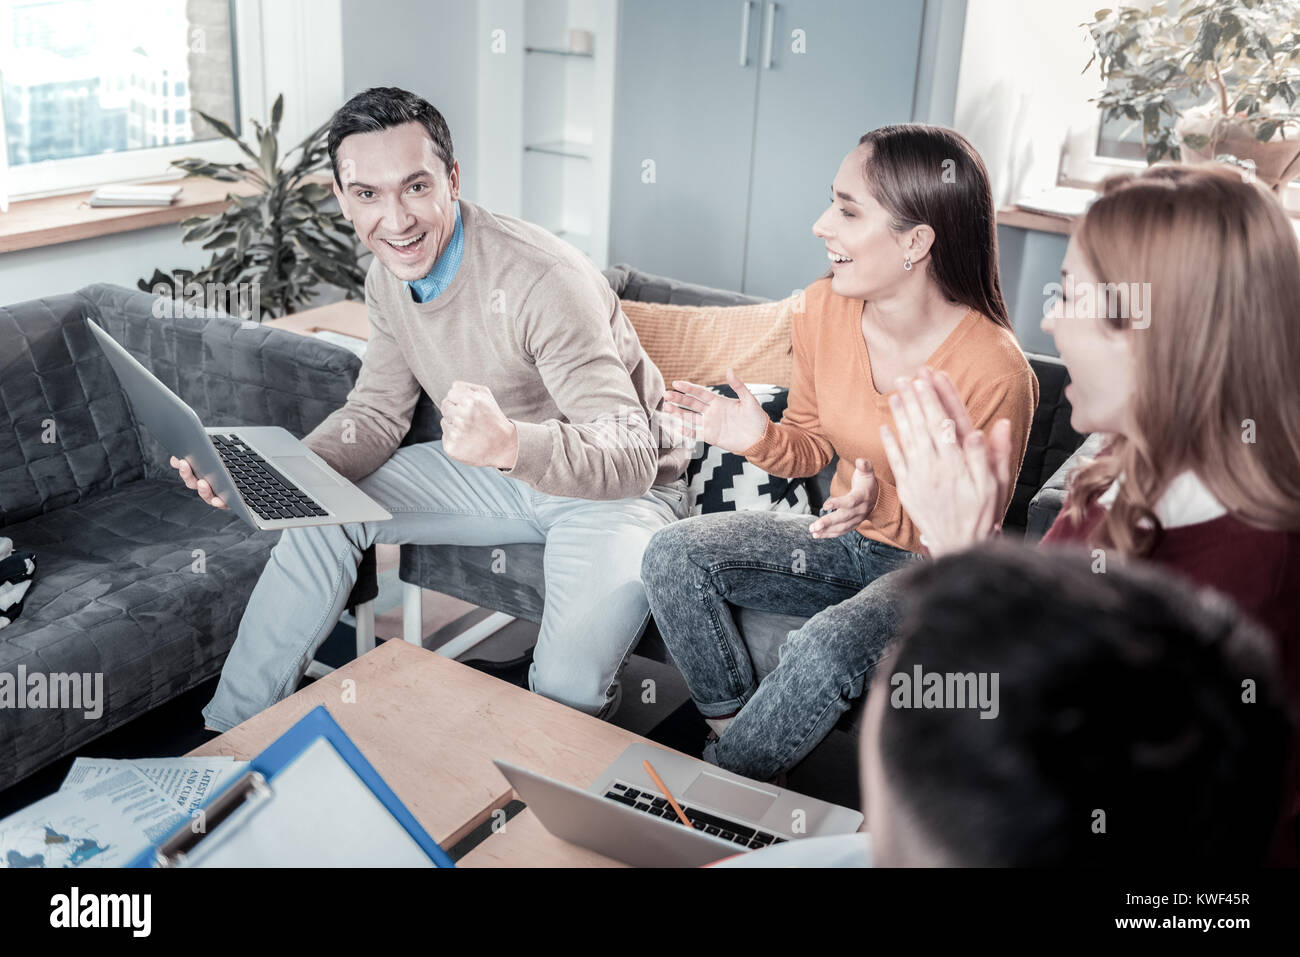 I succeeded. Joyful handsome satisfied man sitting in the office having fun with colleagues and holding the laptop. - Stock Image